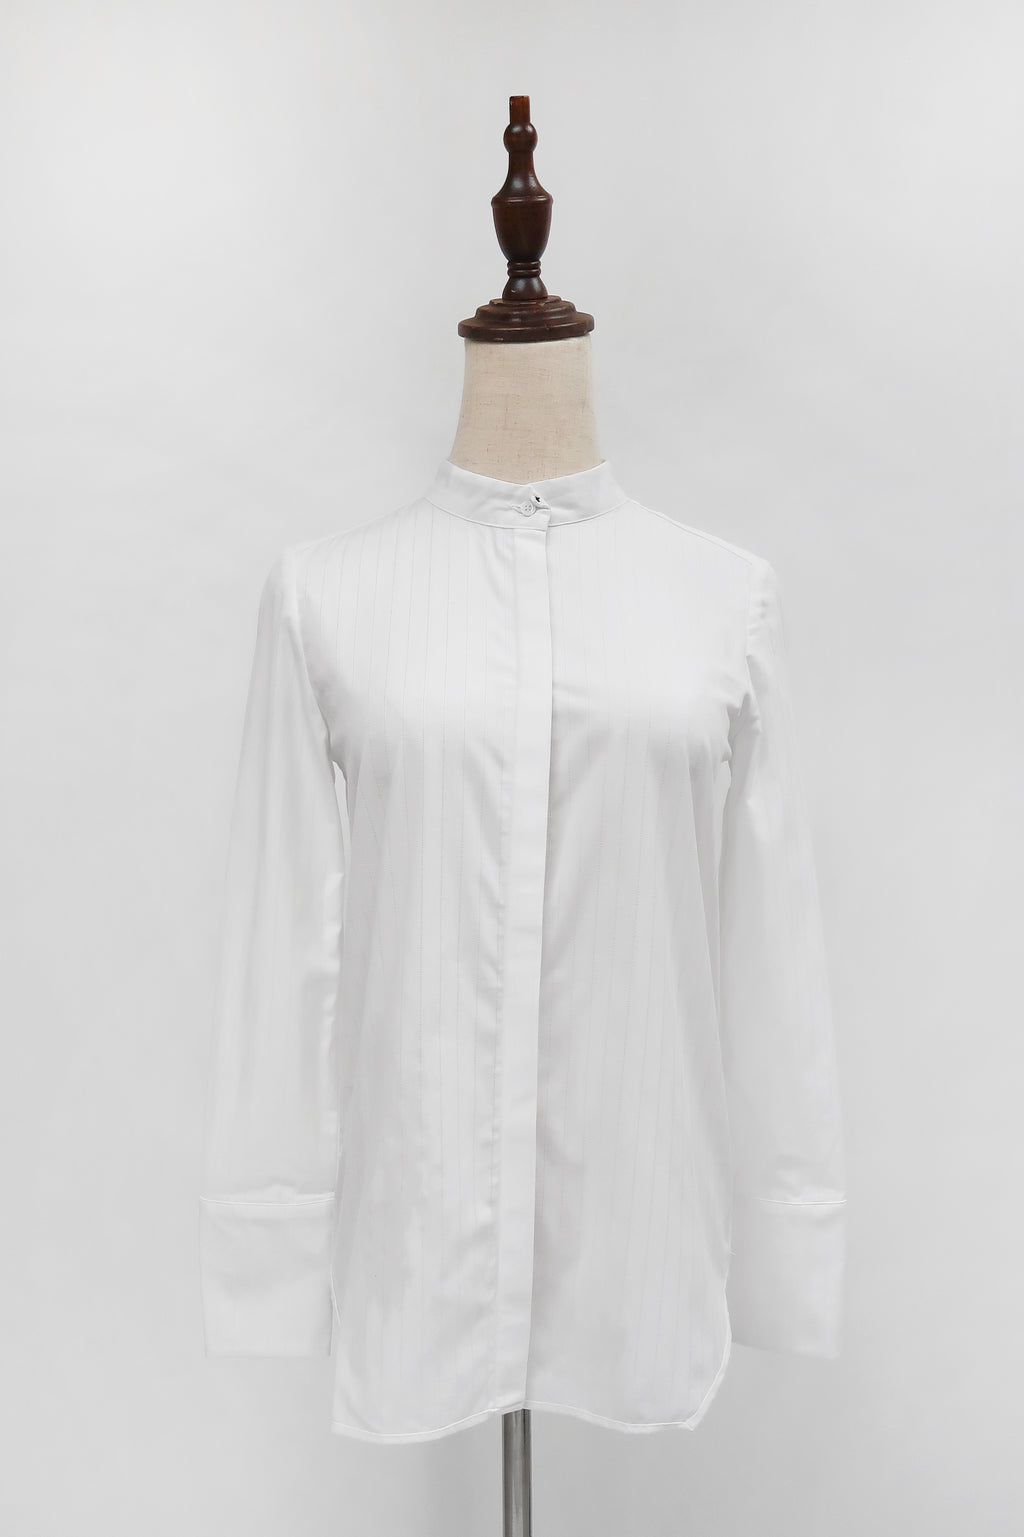 Leslie Shirt - Patterned White fabric